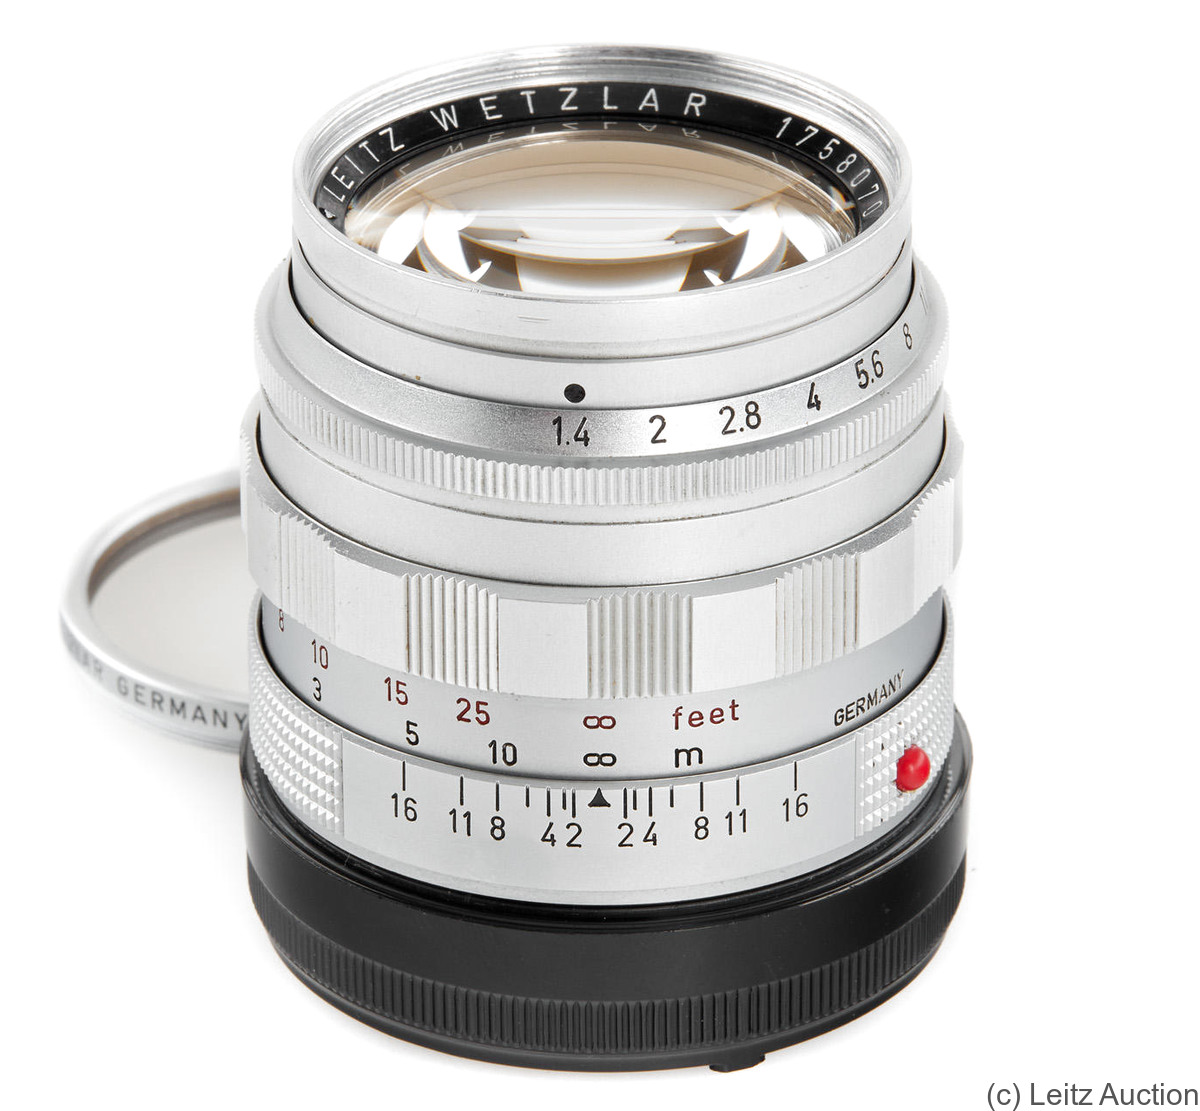 Leitz: 50mm (5cm) f1.4 Summilux (BM, chrome, 1958) camera